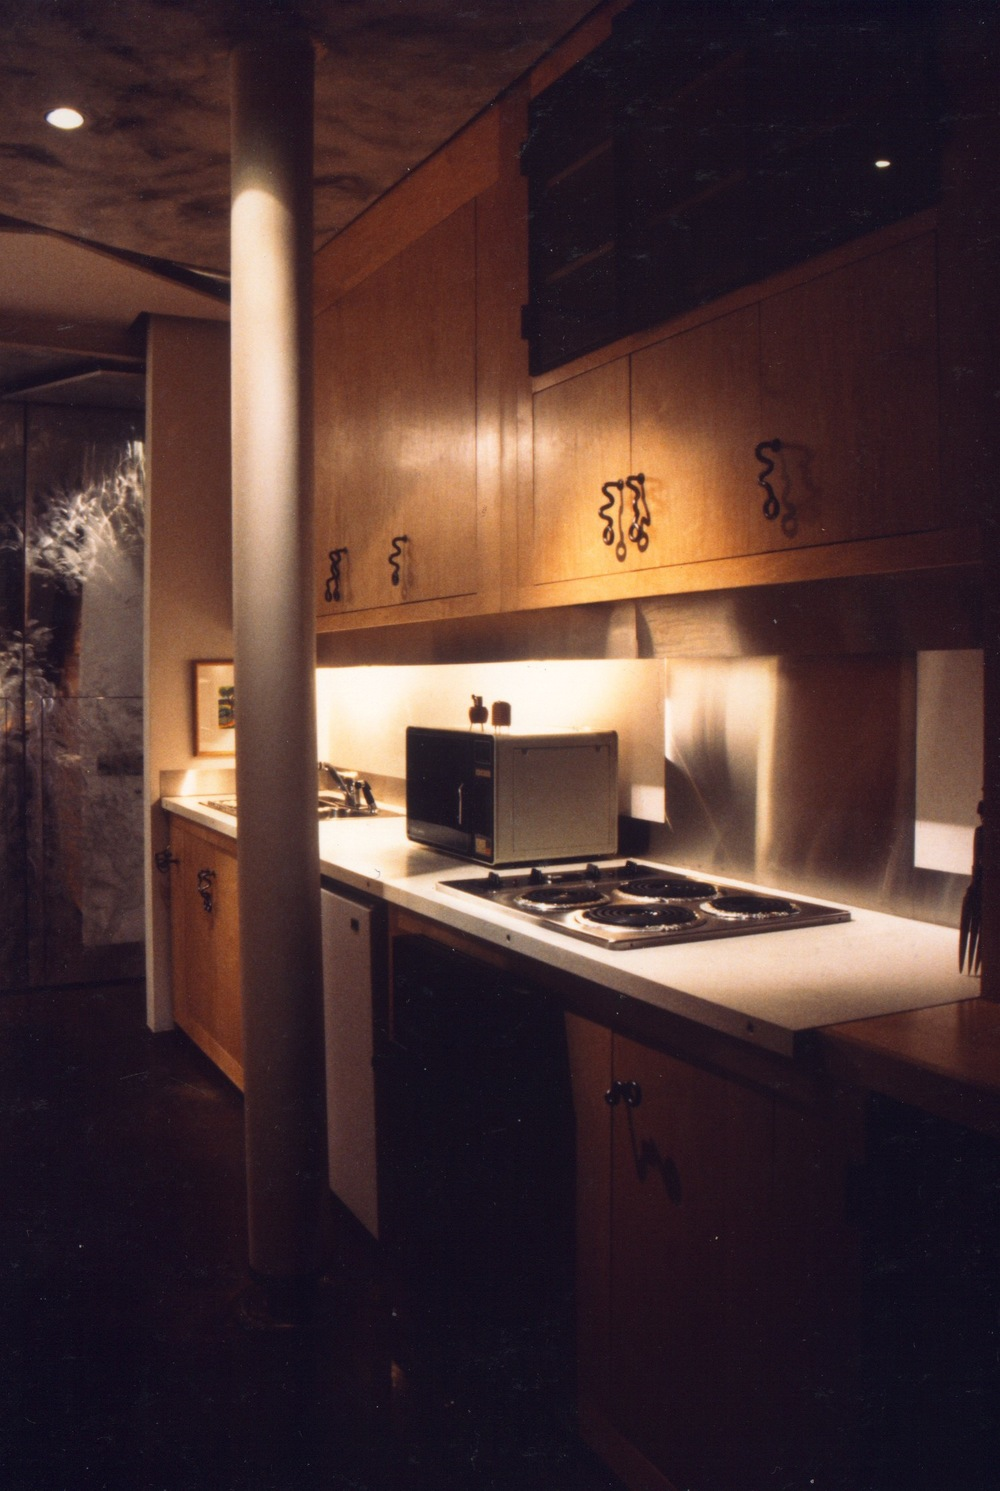 View of Kitchen with Aluminum Storage Hallway Wall Beyond